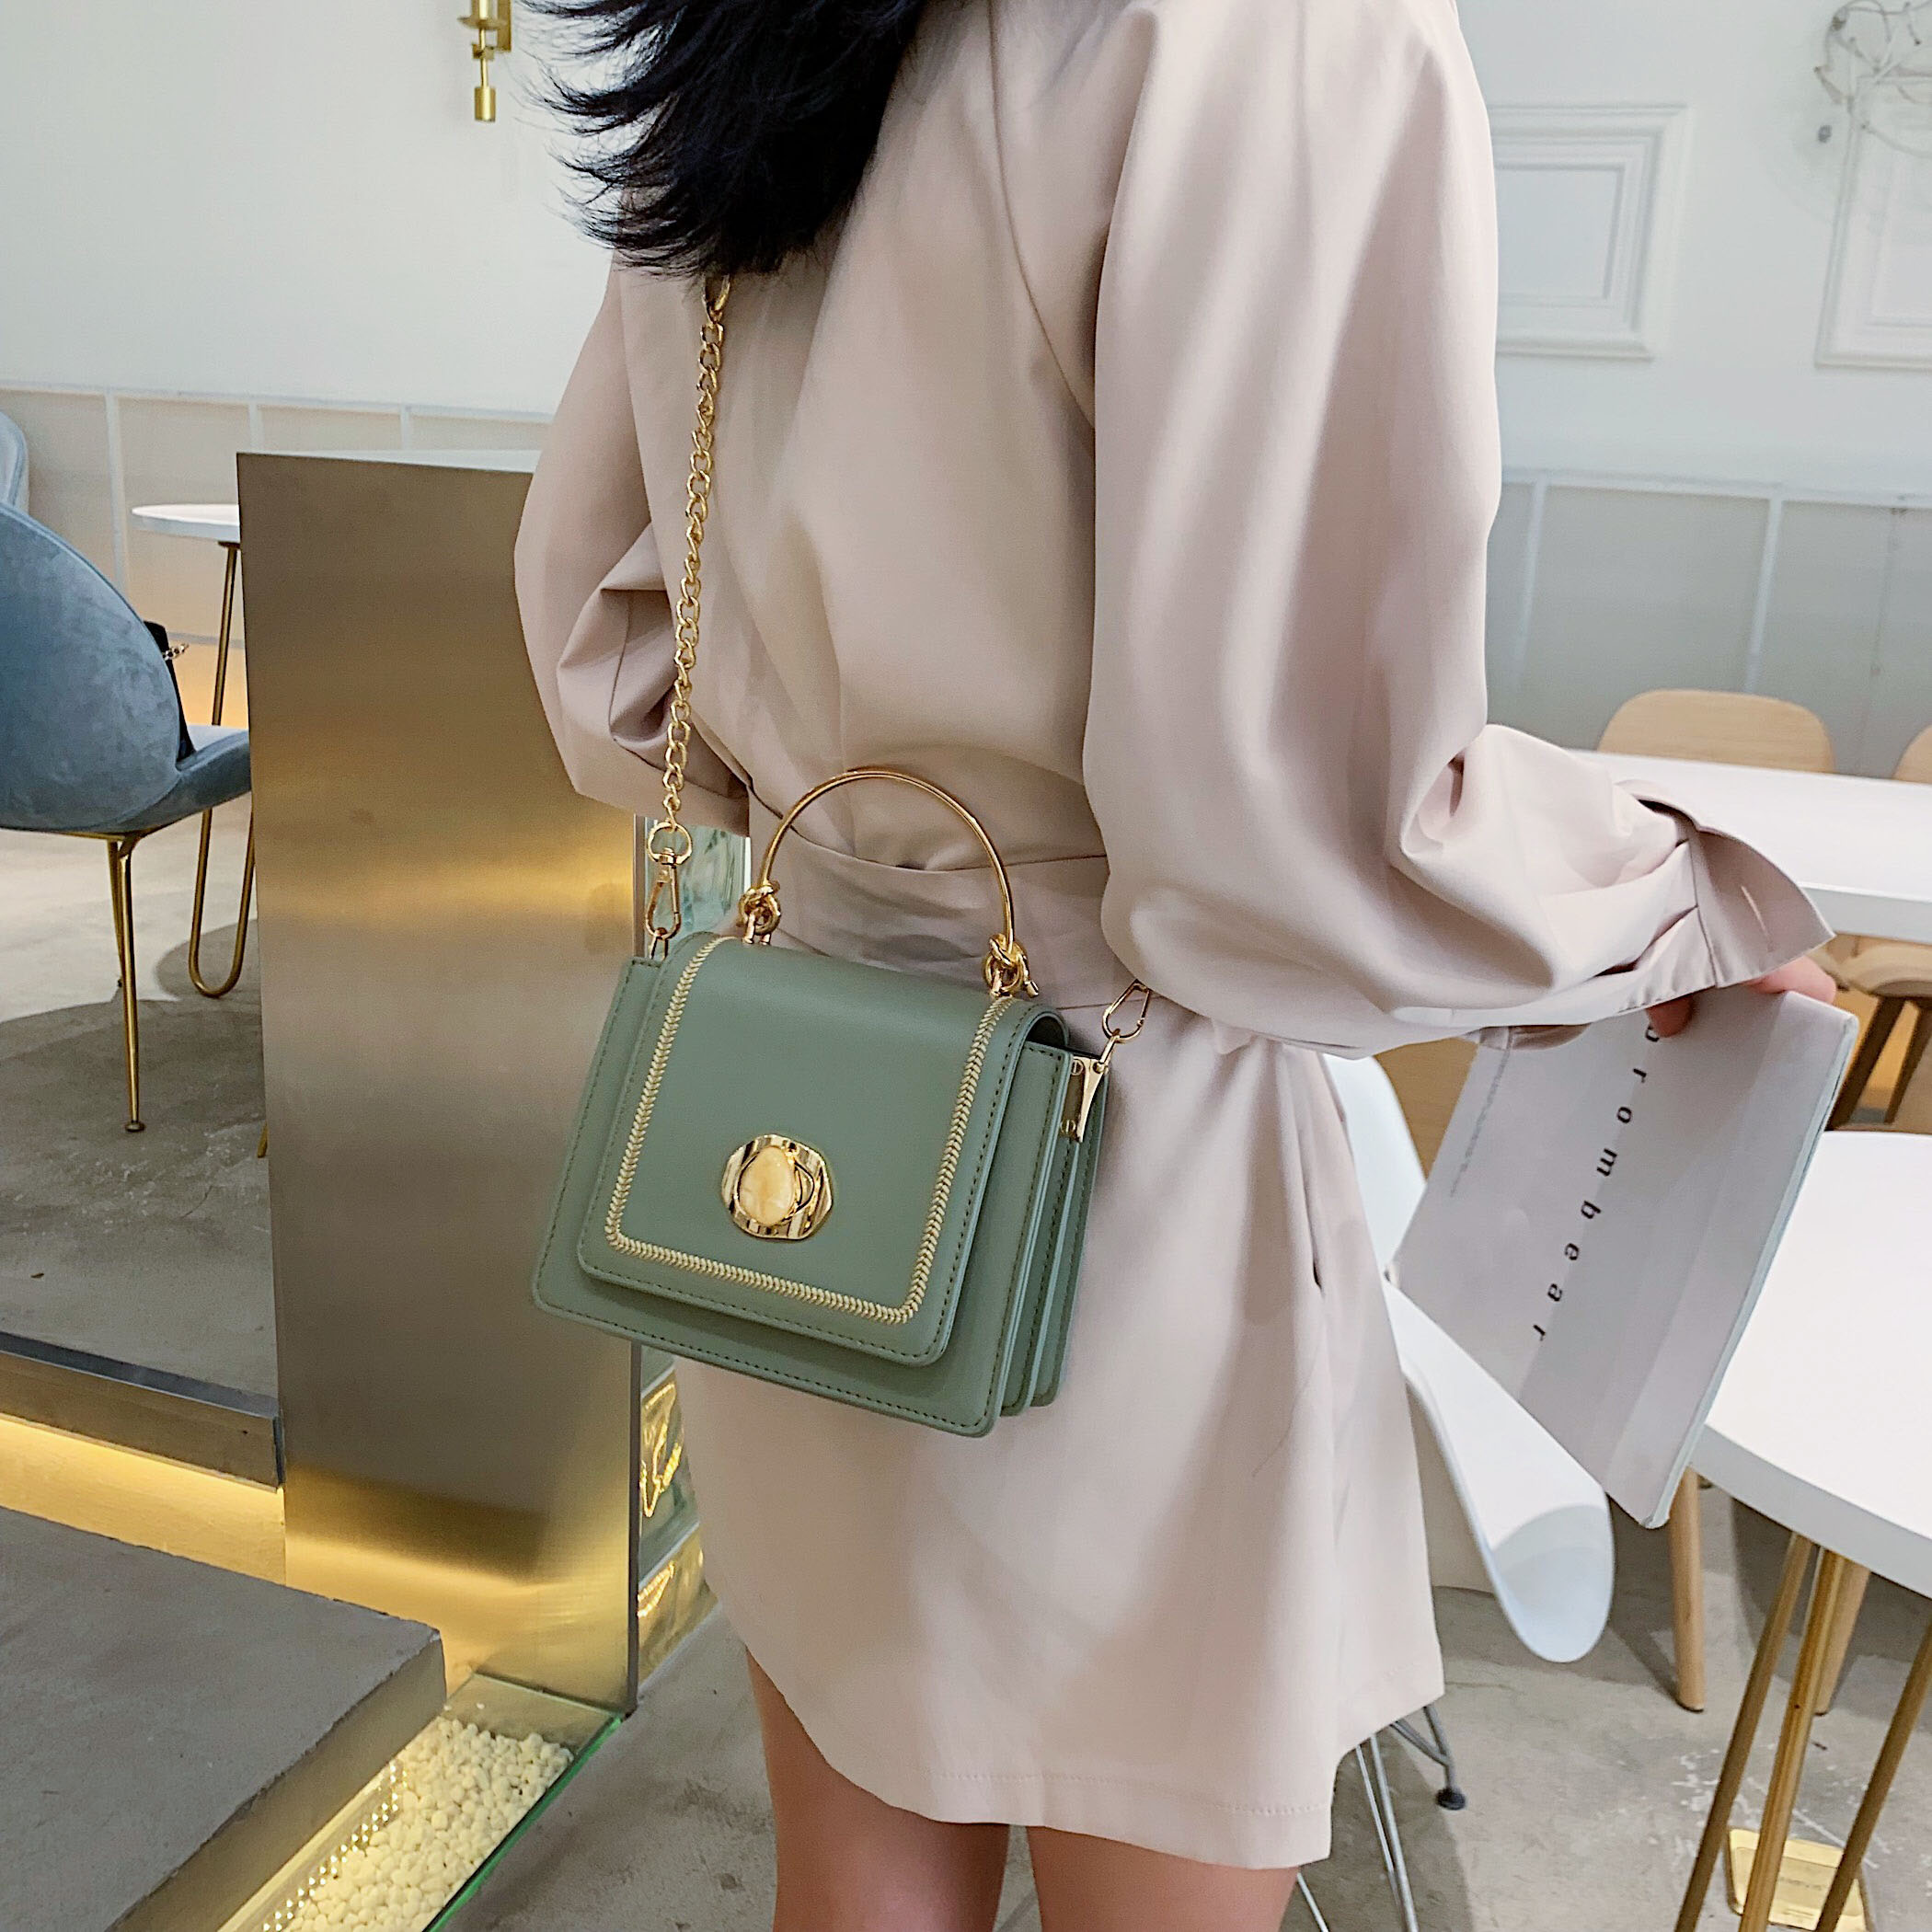 Image 3 - Solid color Leather Mini Crossbody Bags For Women 2019 Summer Messenger Shoulder Bag Female Travel Phone Purses and Handbags-in Shoulder Bags from Luggage & Bags